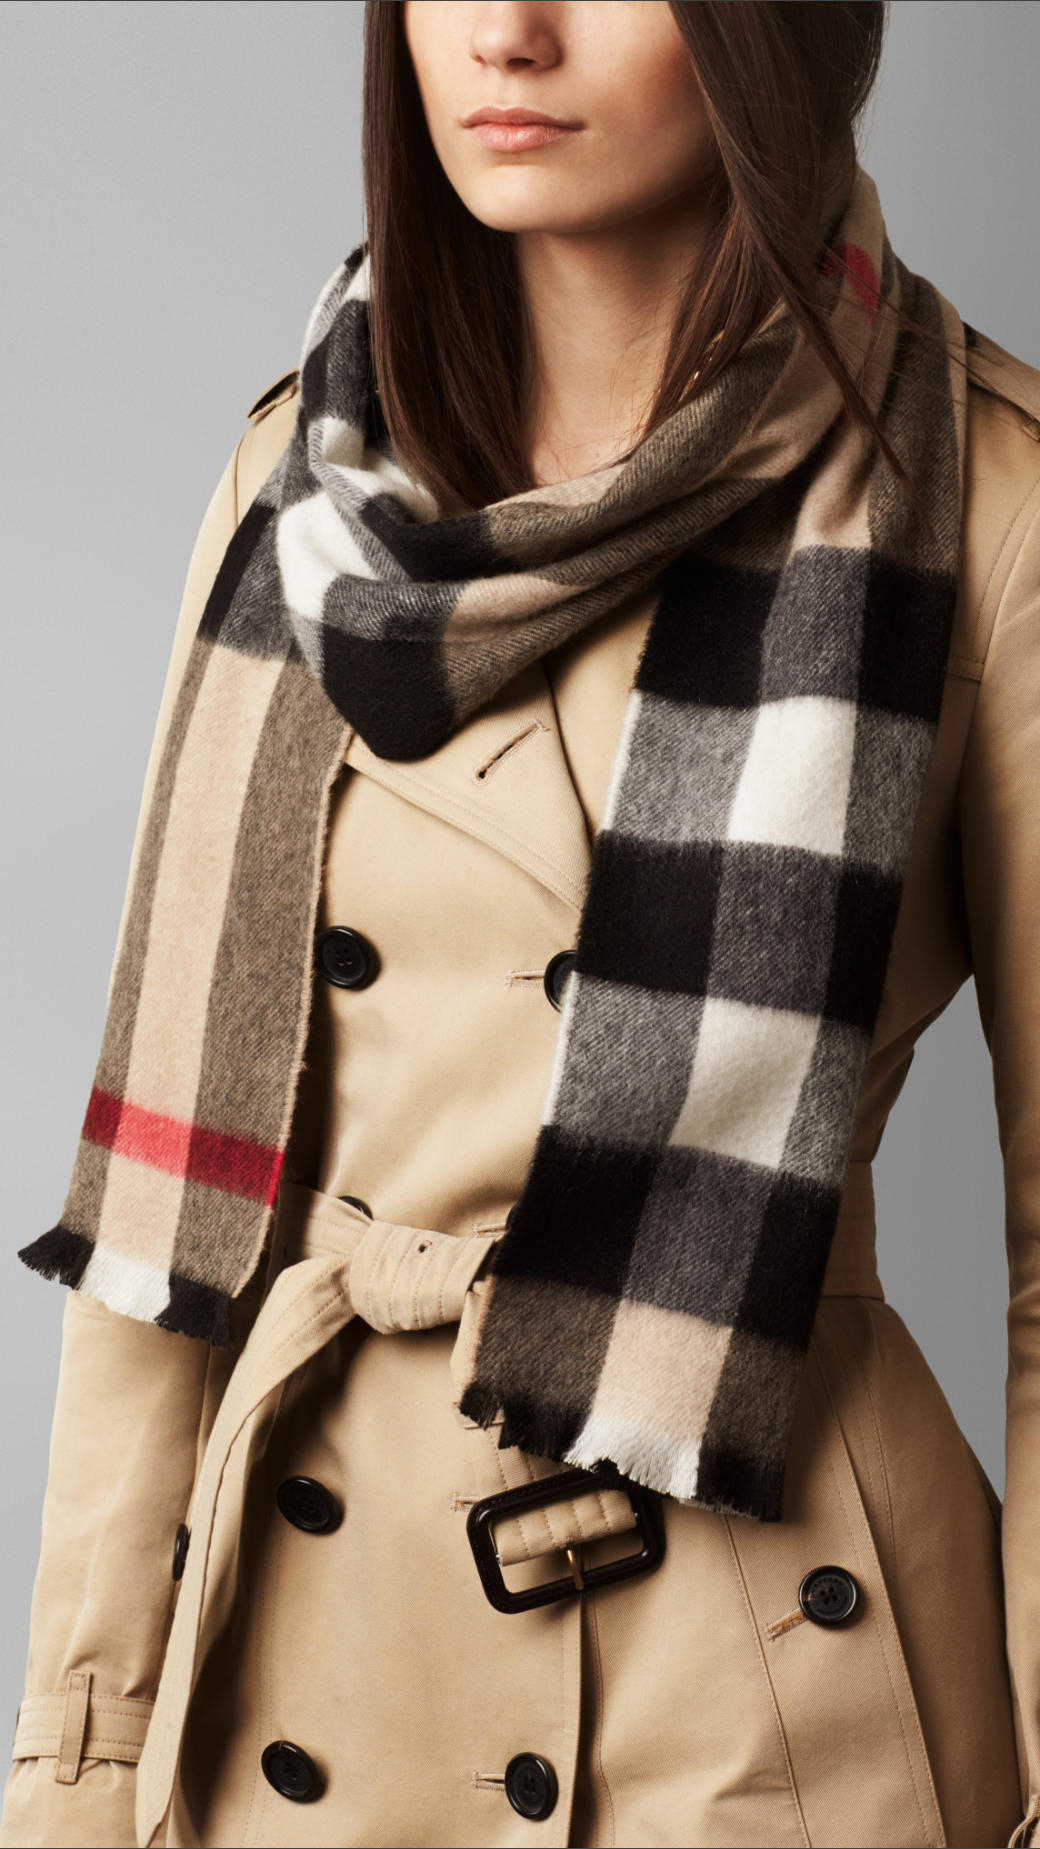 a8b770cd25e new zealand men burberry scarfs 86657 3daae  low price burberry exploded  check cashmere scarf in natural lyst 6bd1b 62038